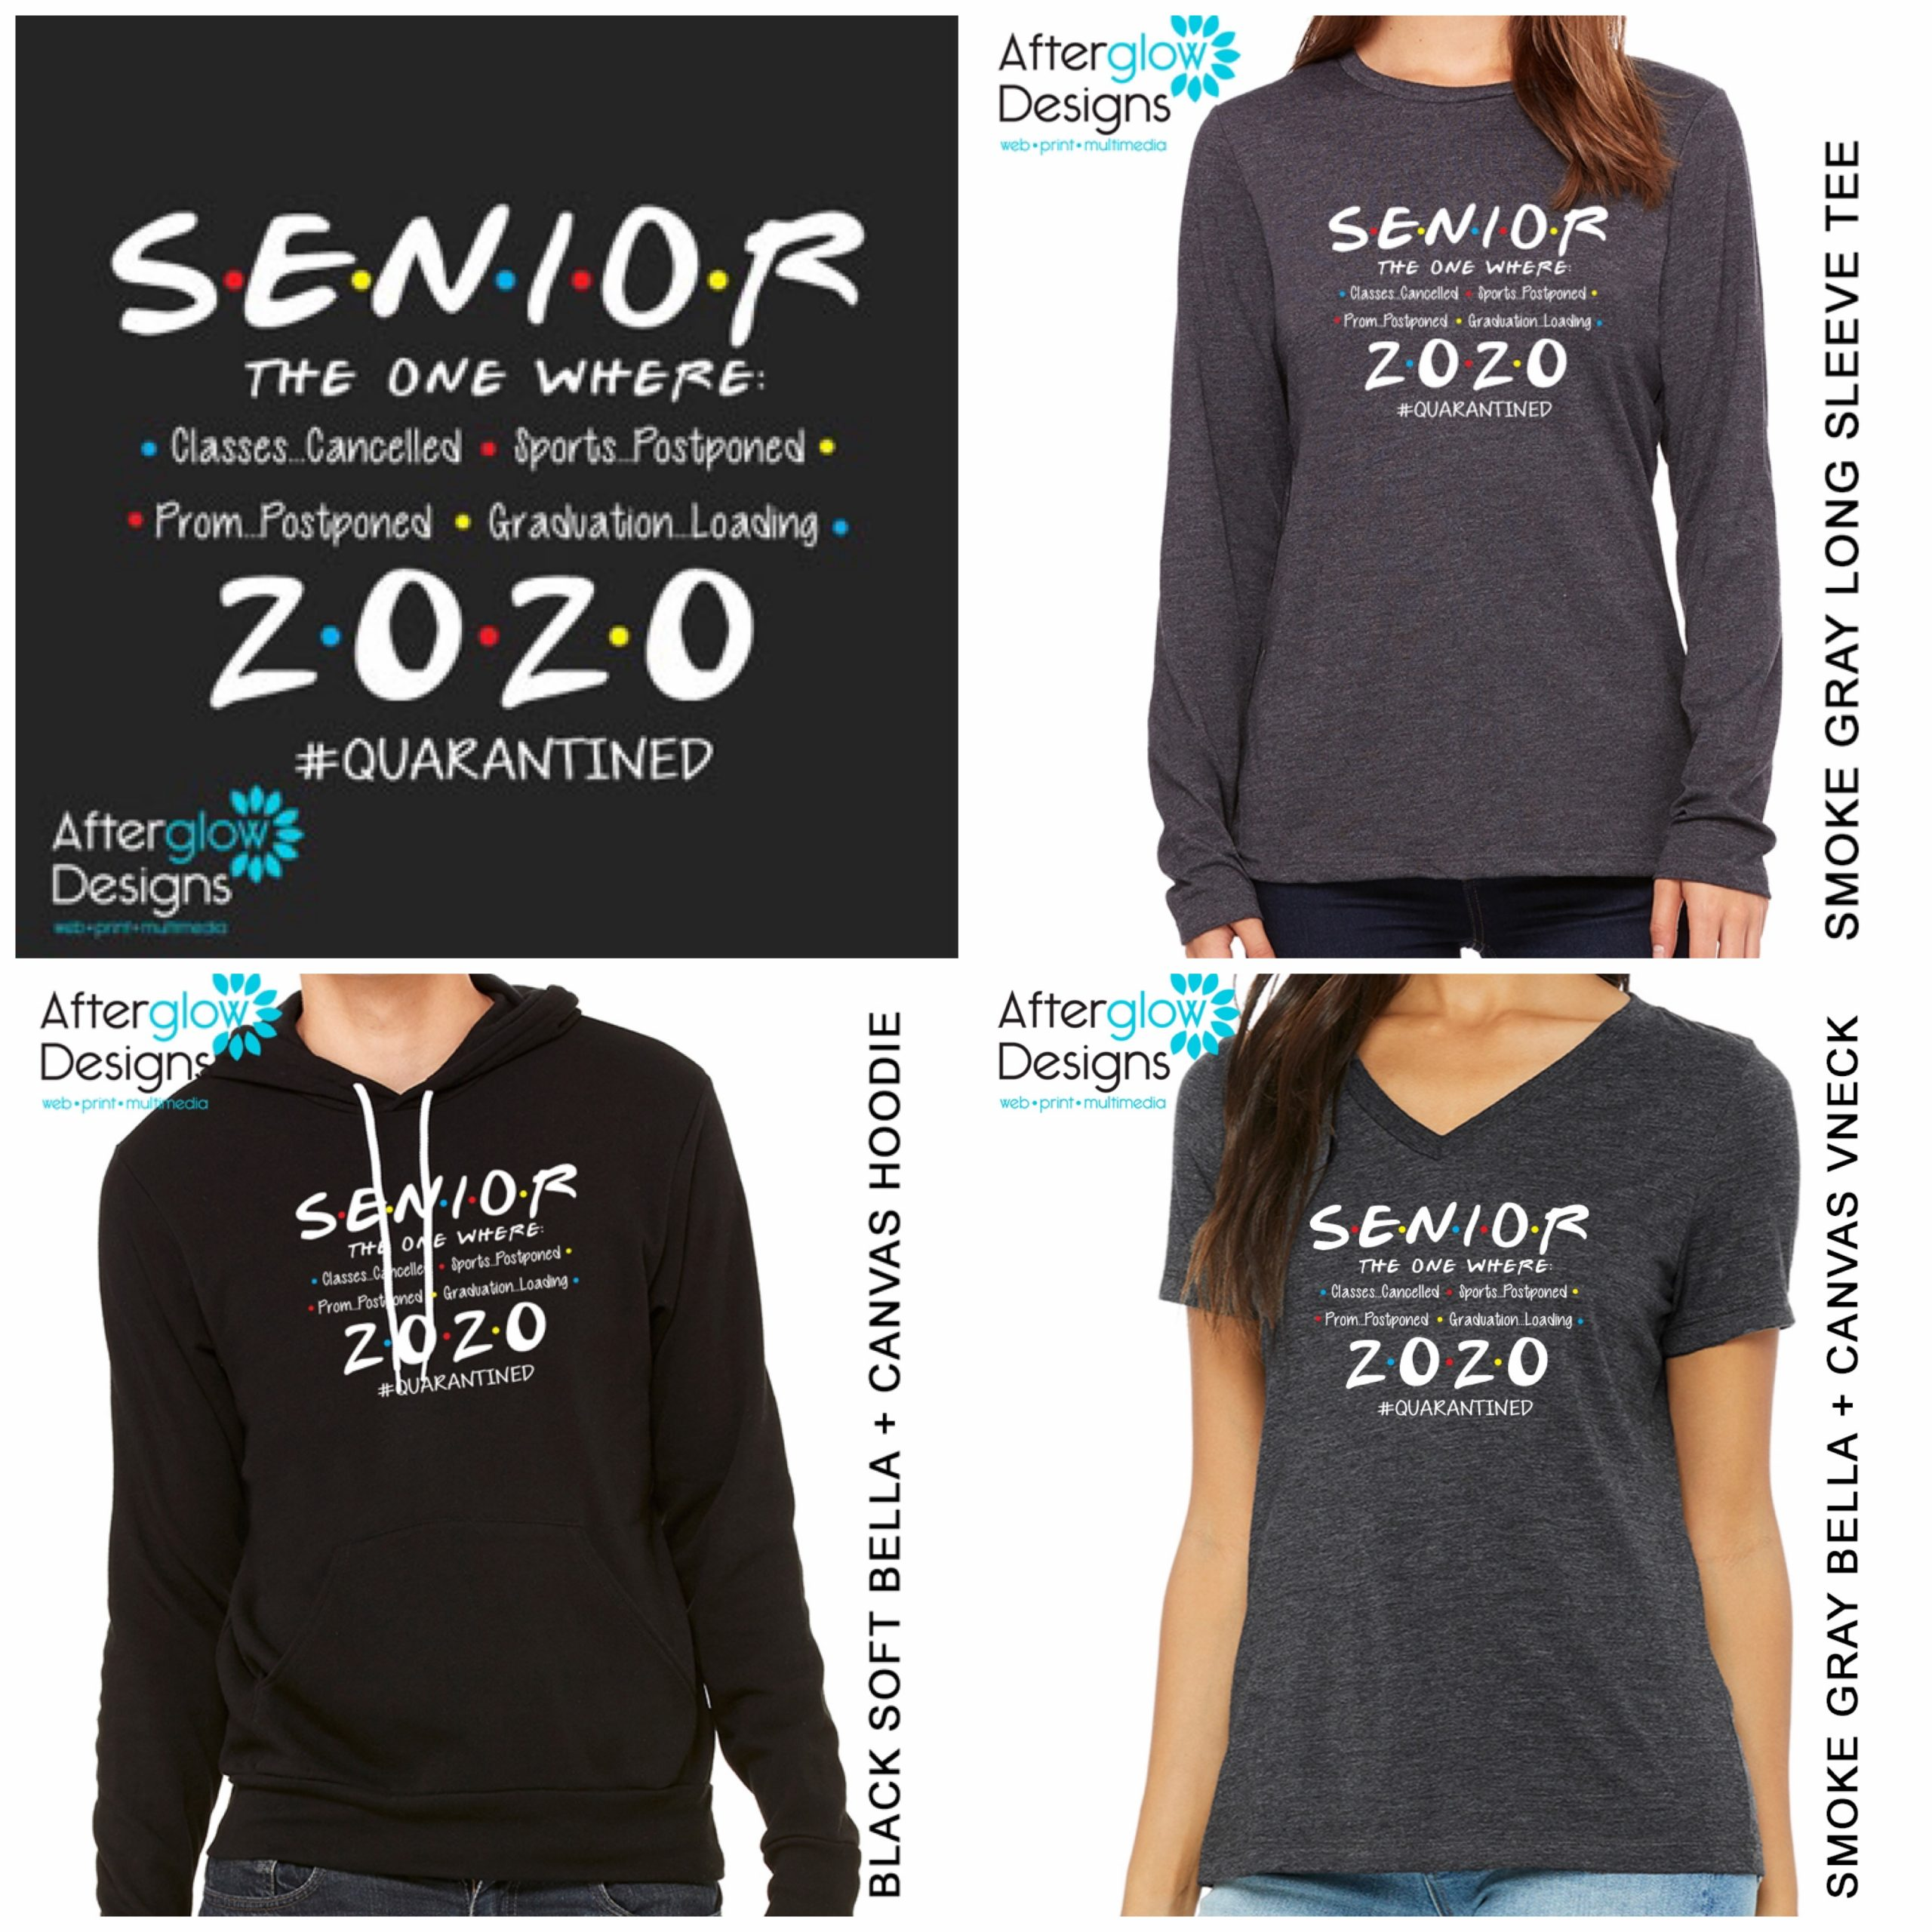 """Senior 2020 - The One Where"" on Tees Collage"